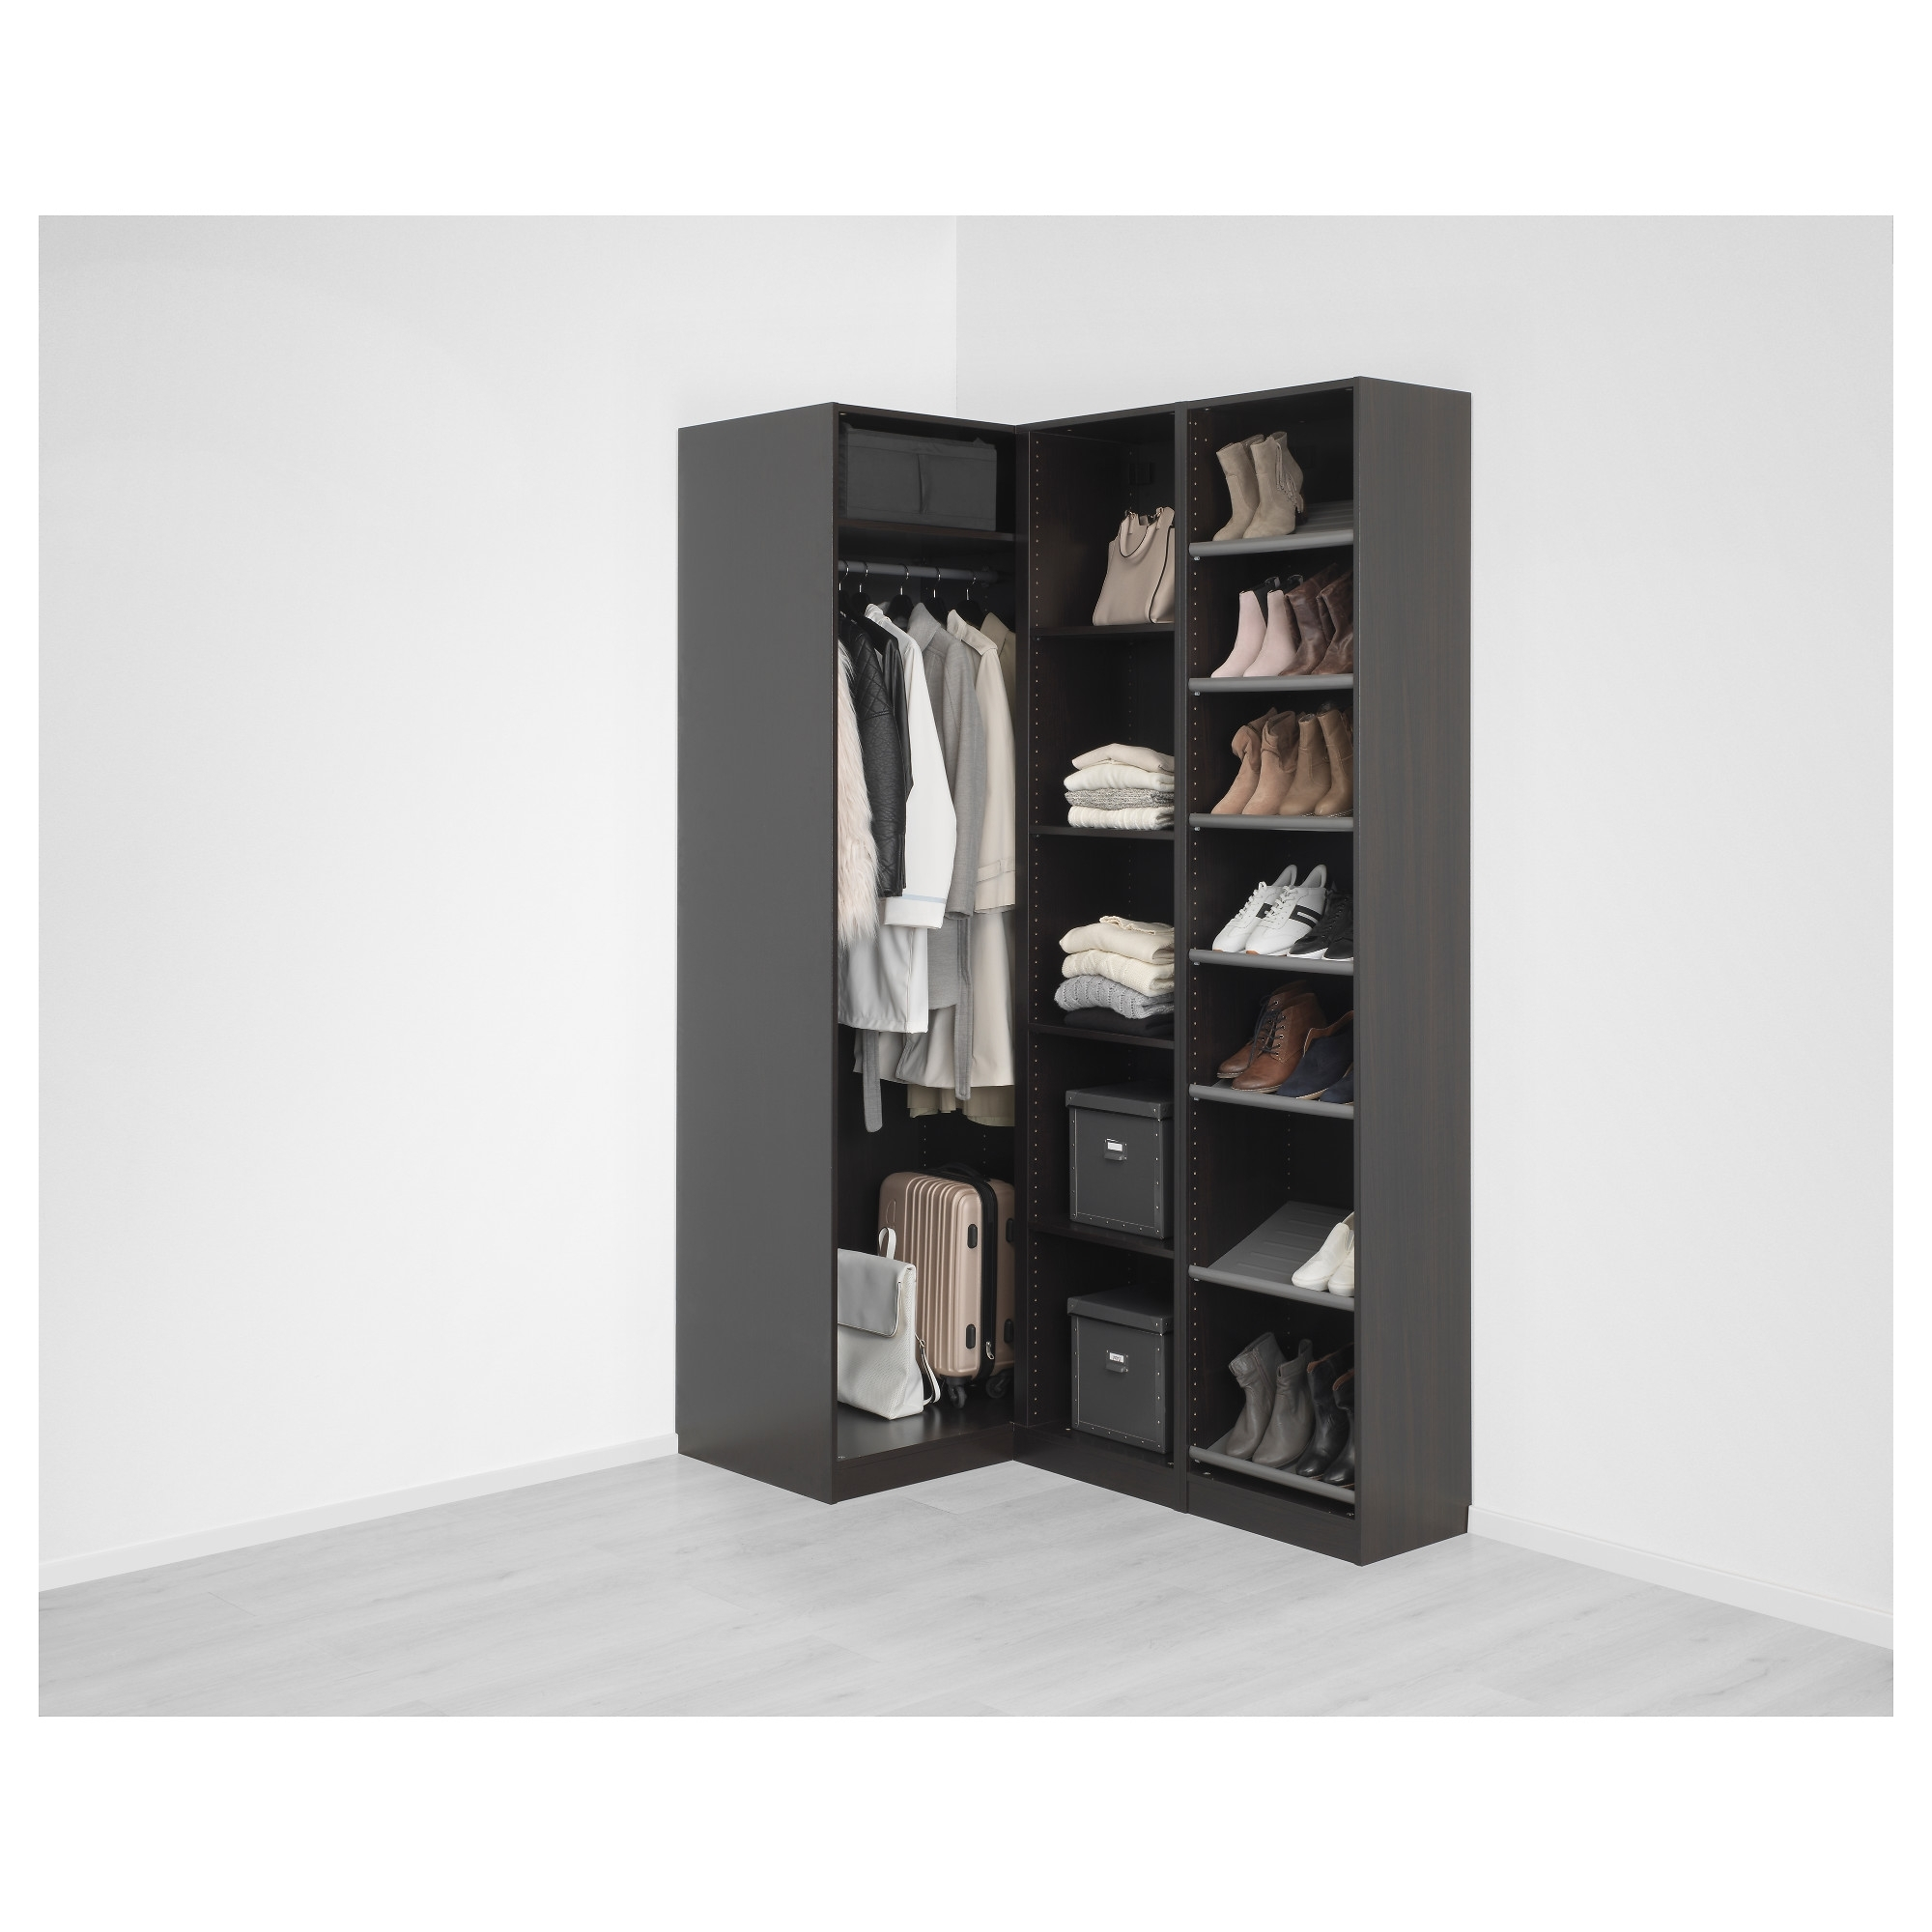 Preferred Pax Corner Wardrobe Black Brown/nexus Vikedal 160/88X236 Cm – Ikea With Regard To White Corner Wardrobes Units (View 11 of 15)